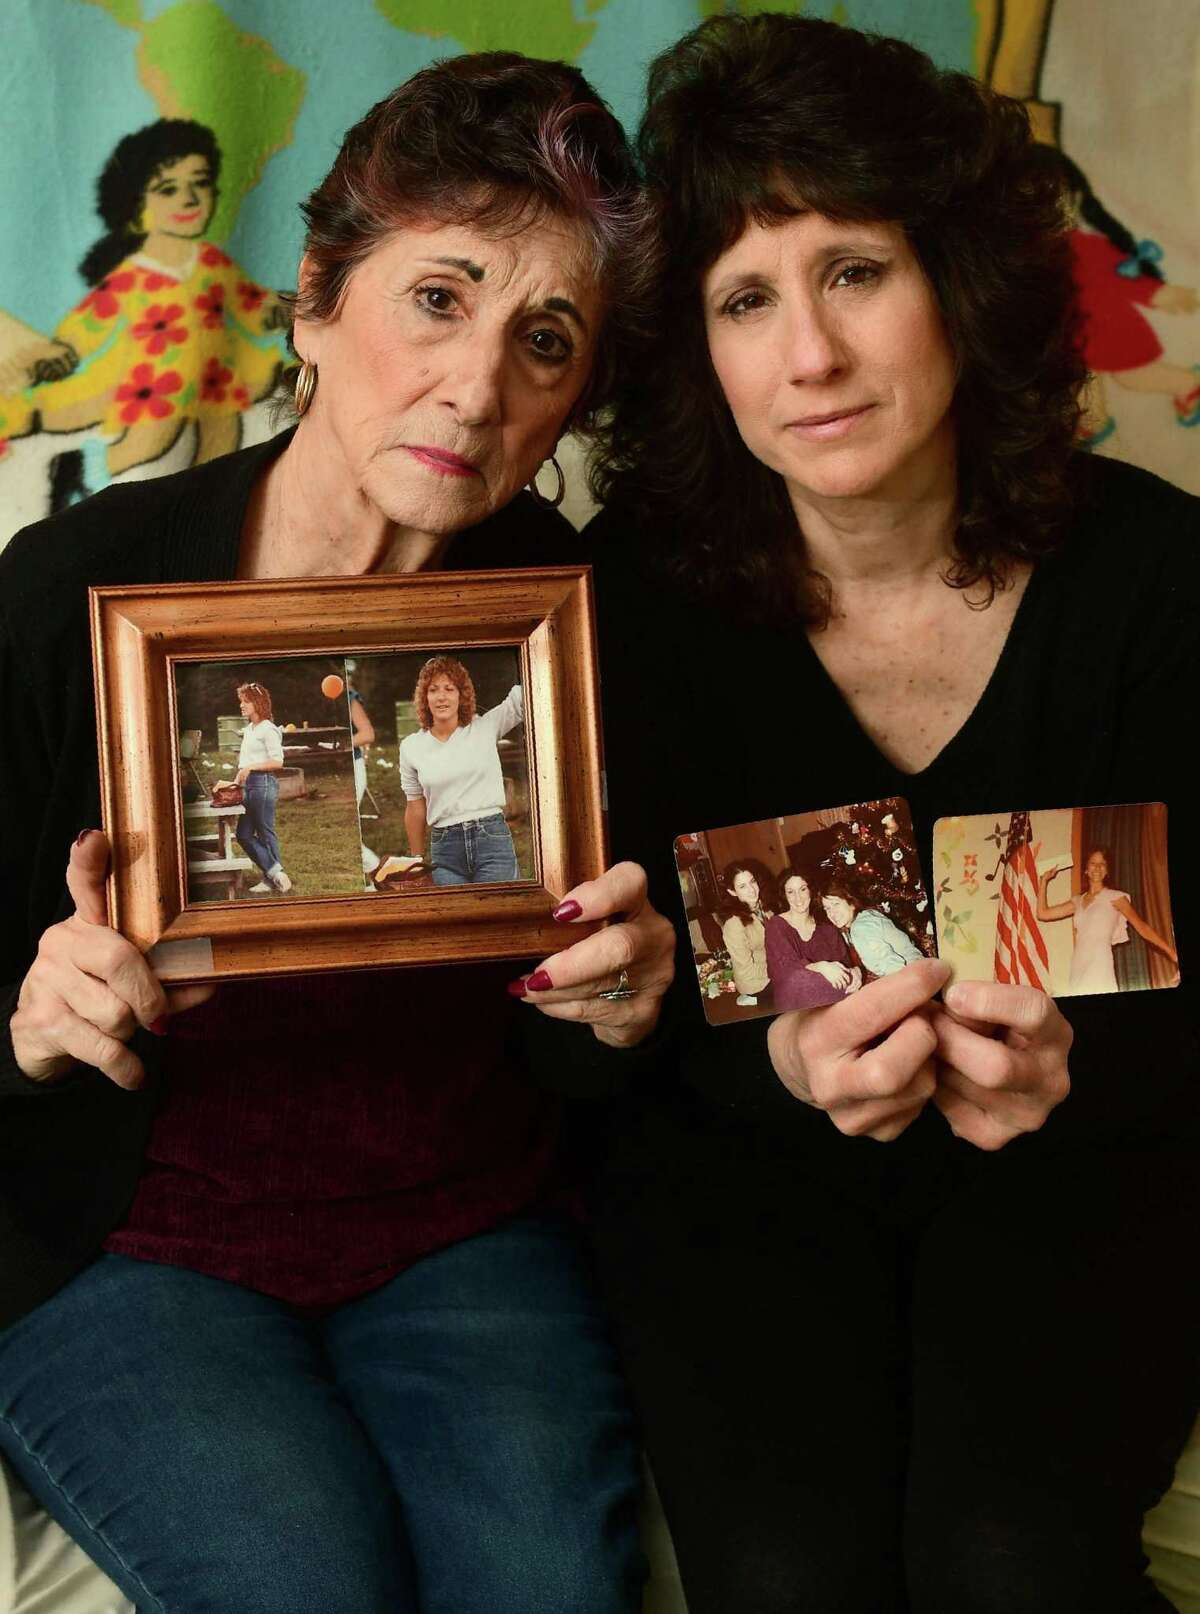 Mary Lou Grisanti and her daughter Gina Grisanti at Gina's home in Norwalk on Wednesday. After 35 years, the family of April Grisanti is still struggling to come to grips with her disappearance.